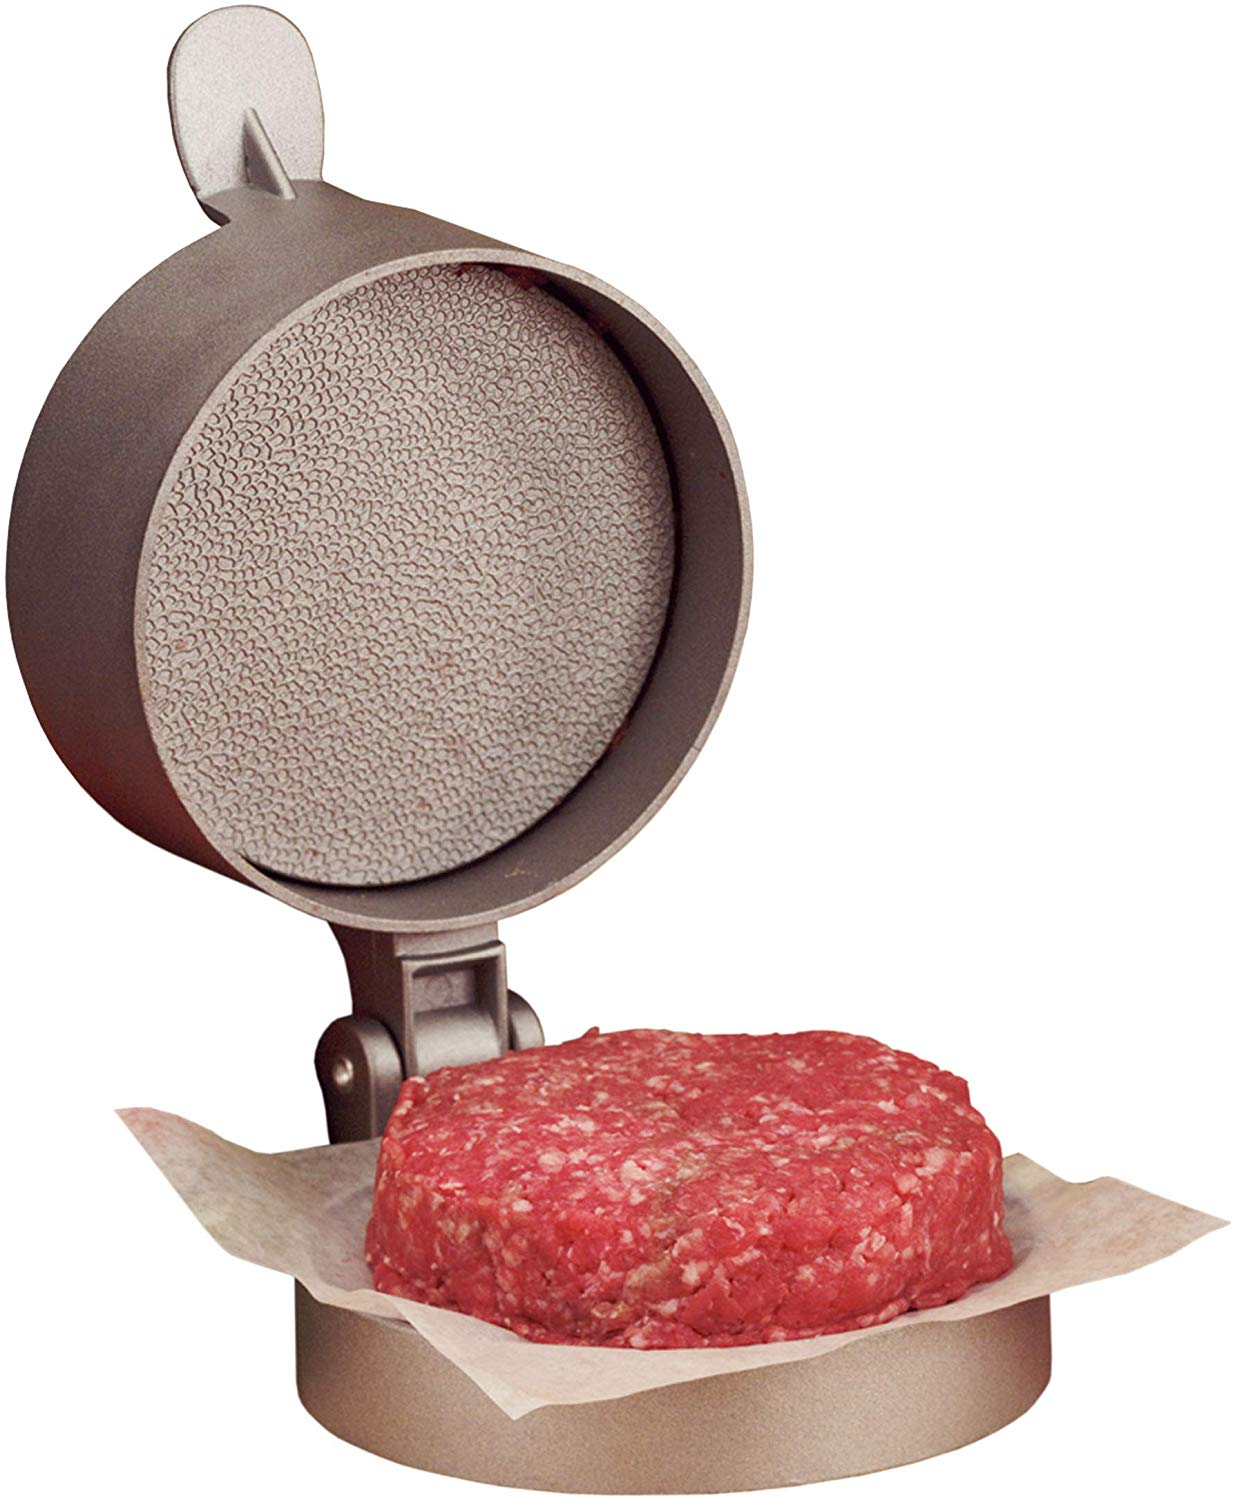 Weston burger hamburger press